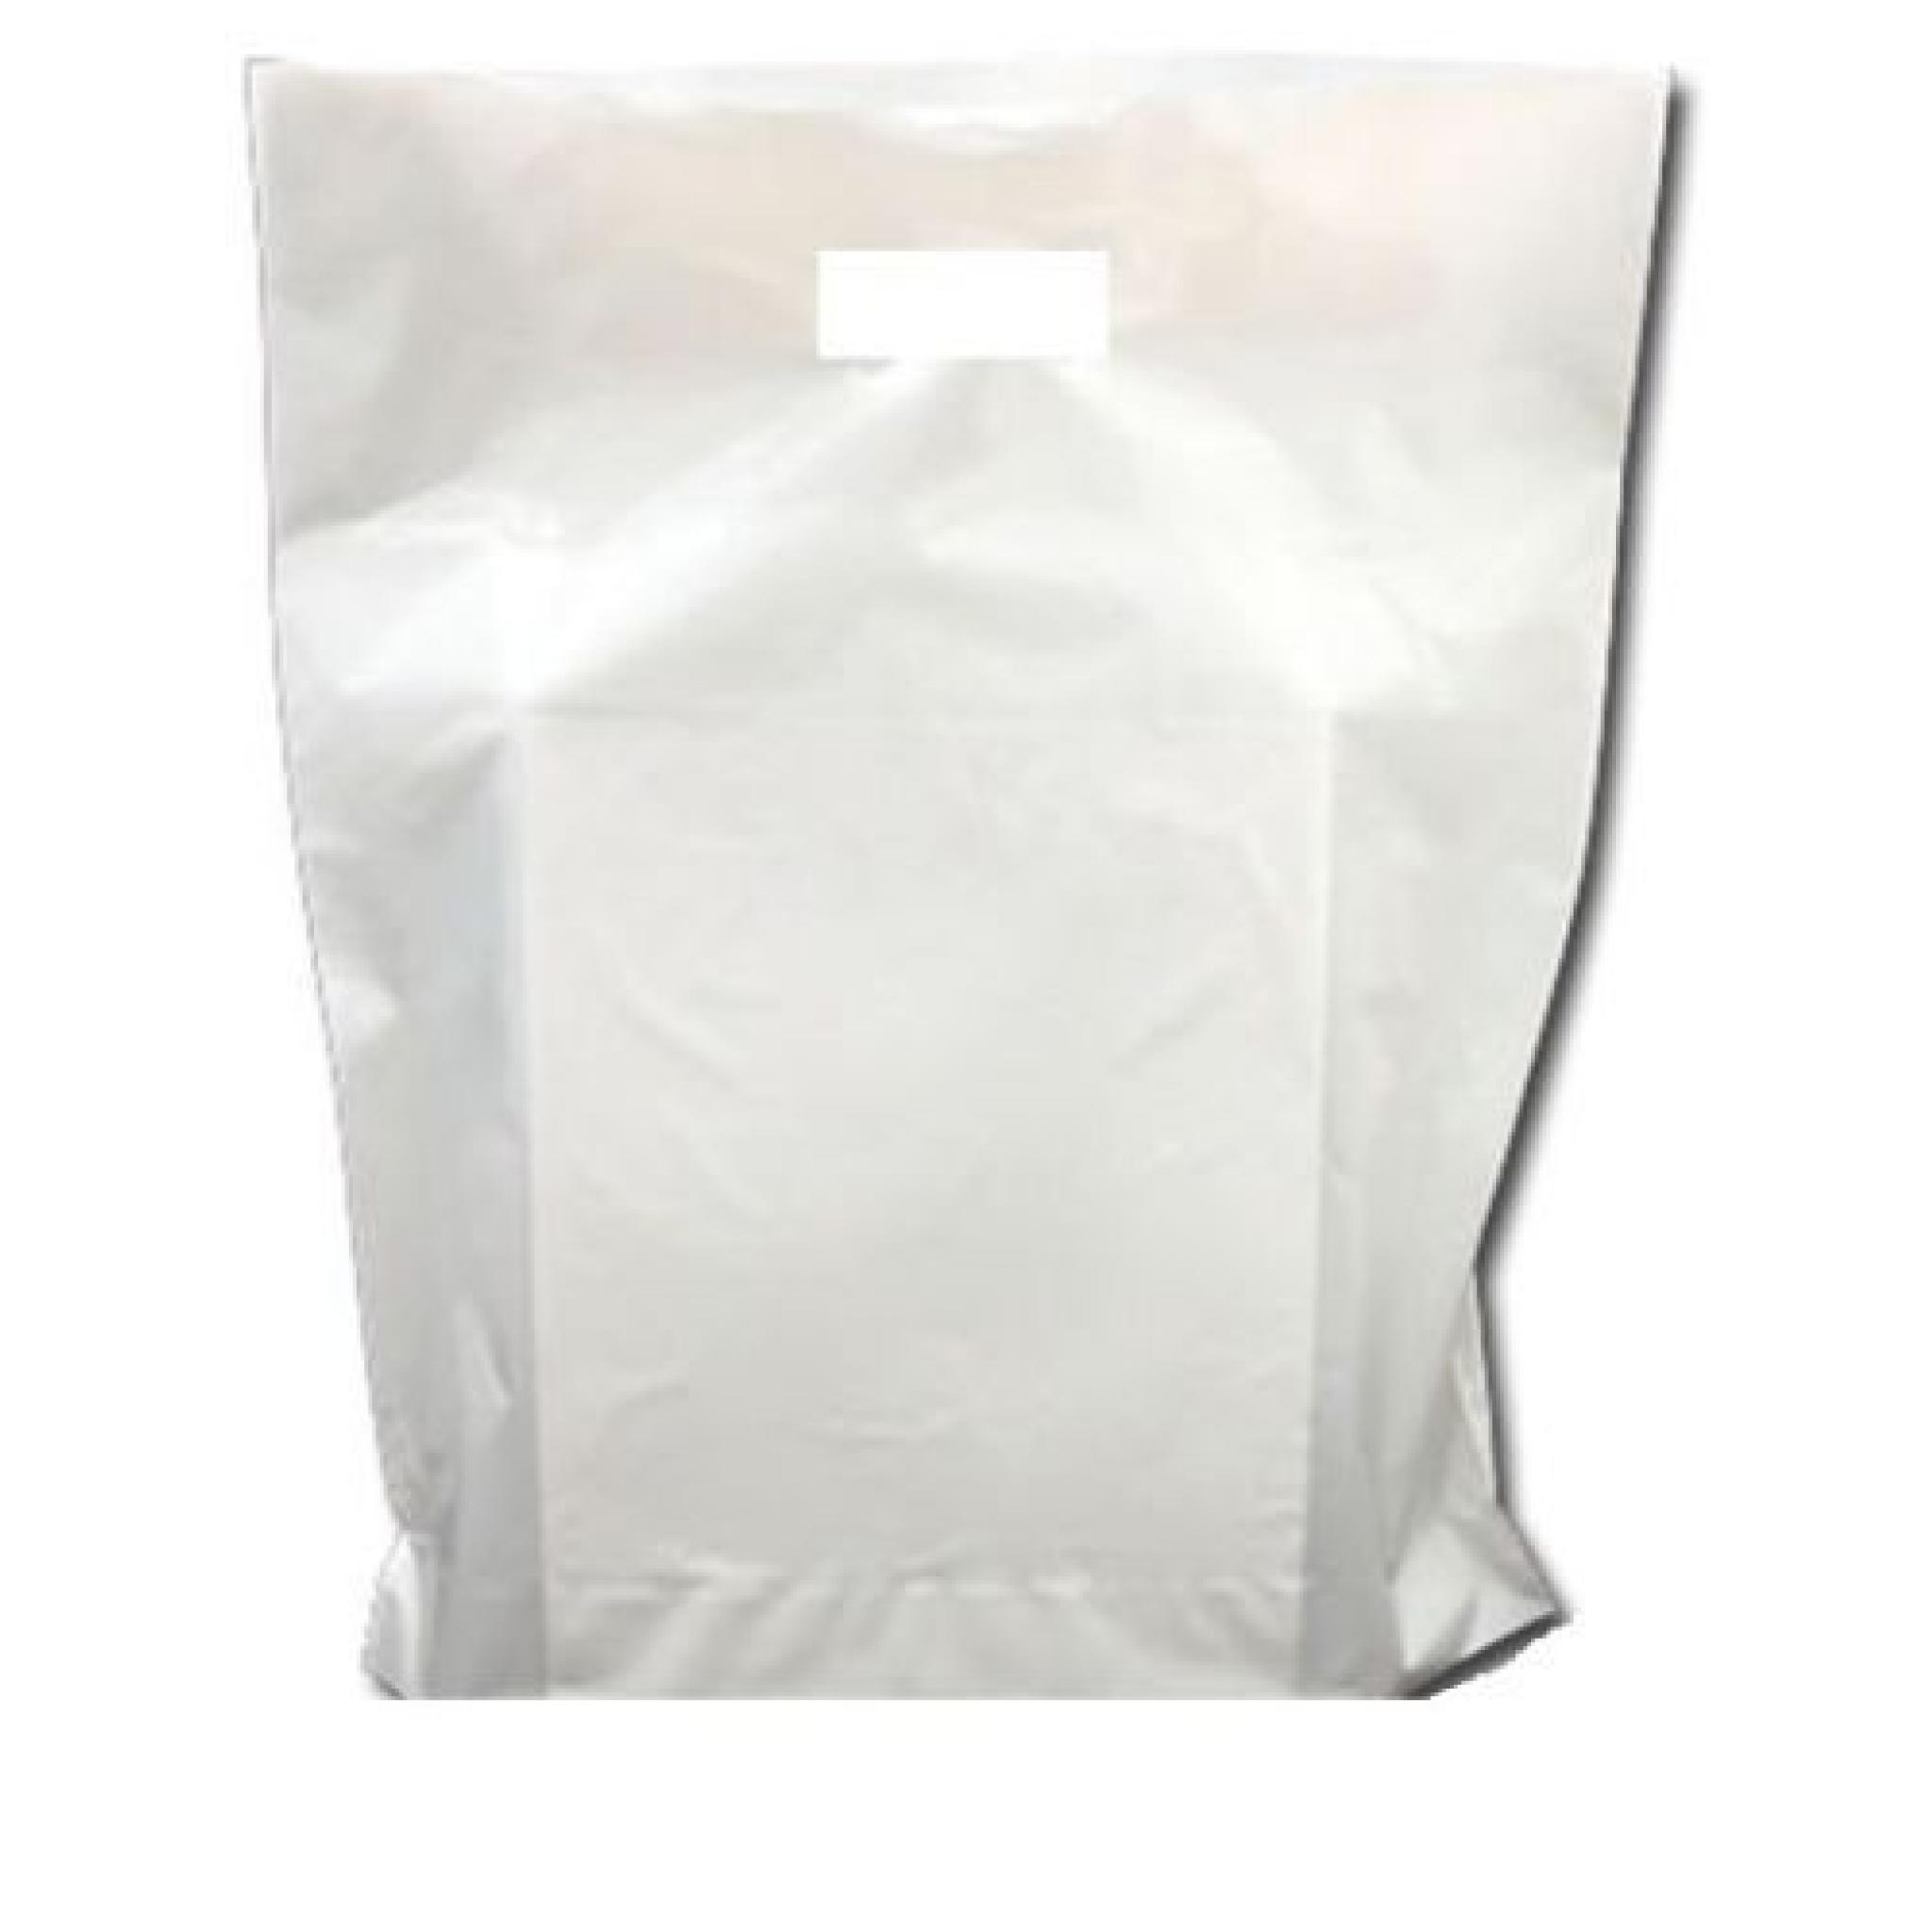 200 GAUGE 1000 x HEAVY DUTY CLEAR  12 x 18 PLASTIC FOOD APPROVED BAGS Verpackung & Versand